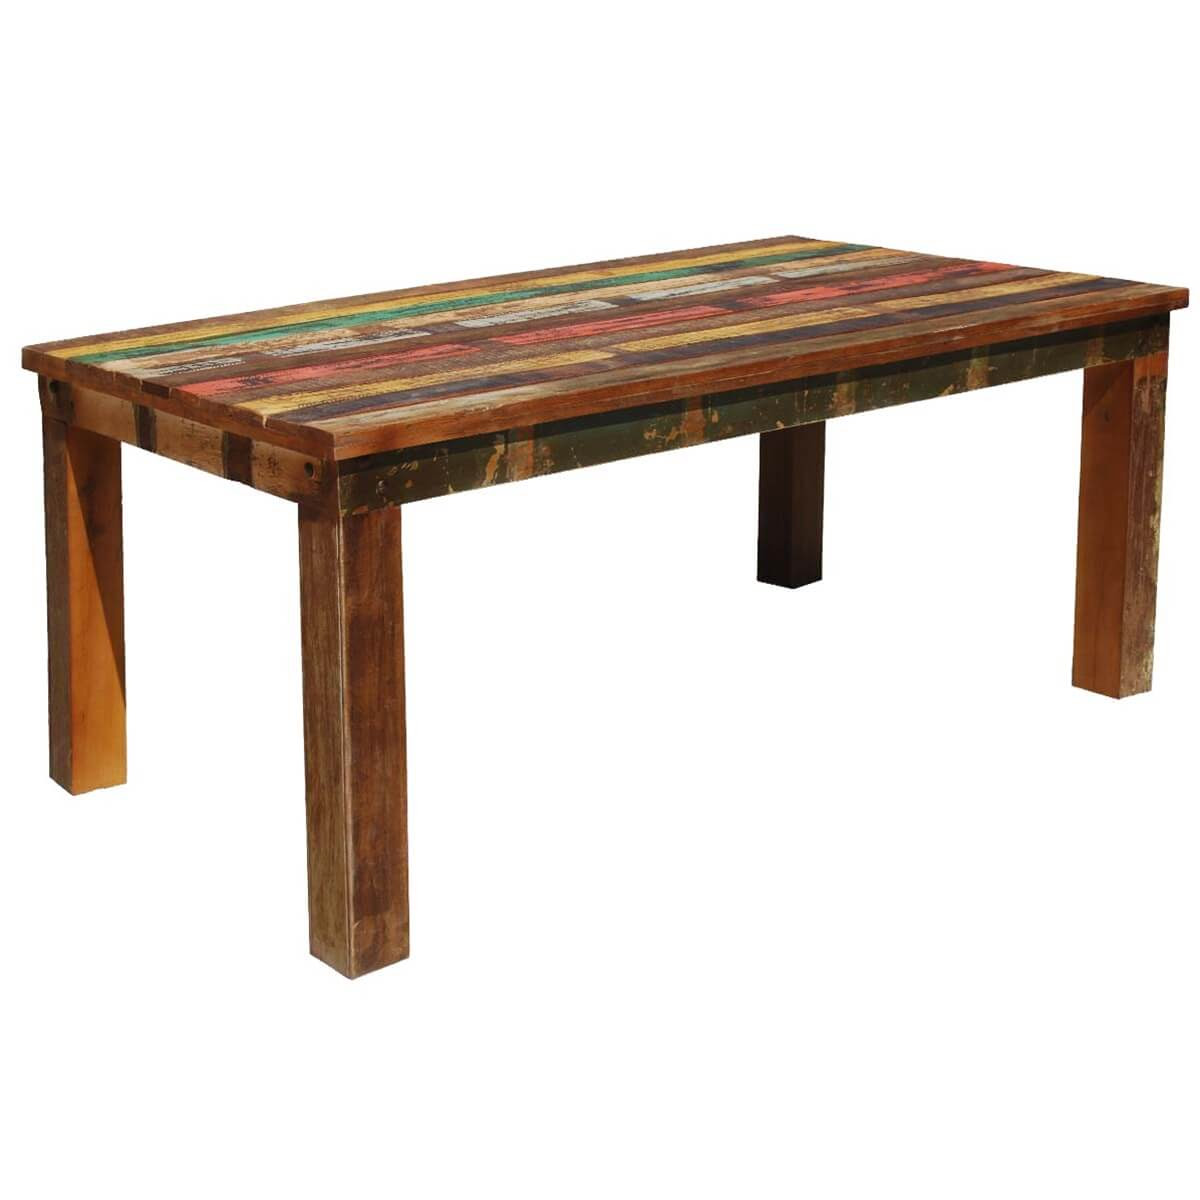 Reclaimed wood dining table los angeles buy dining table for Where to buy reclaimed wood los angeles